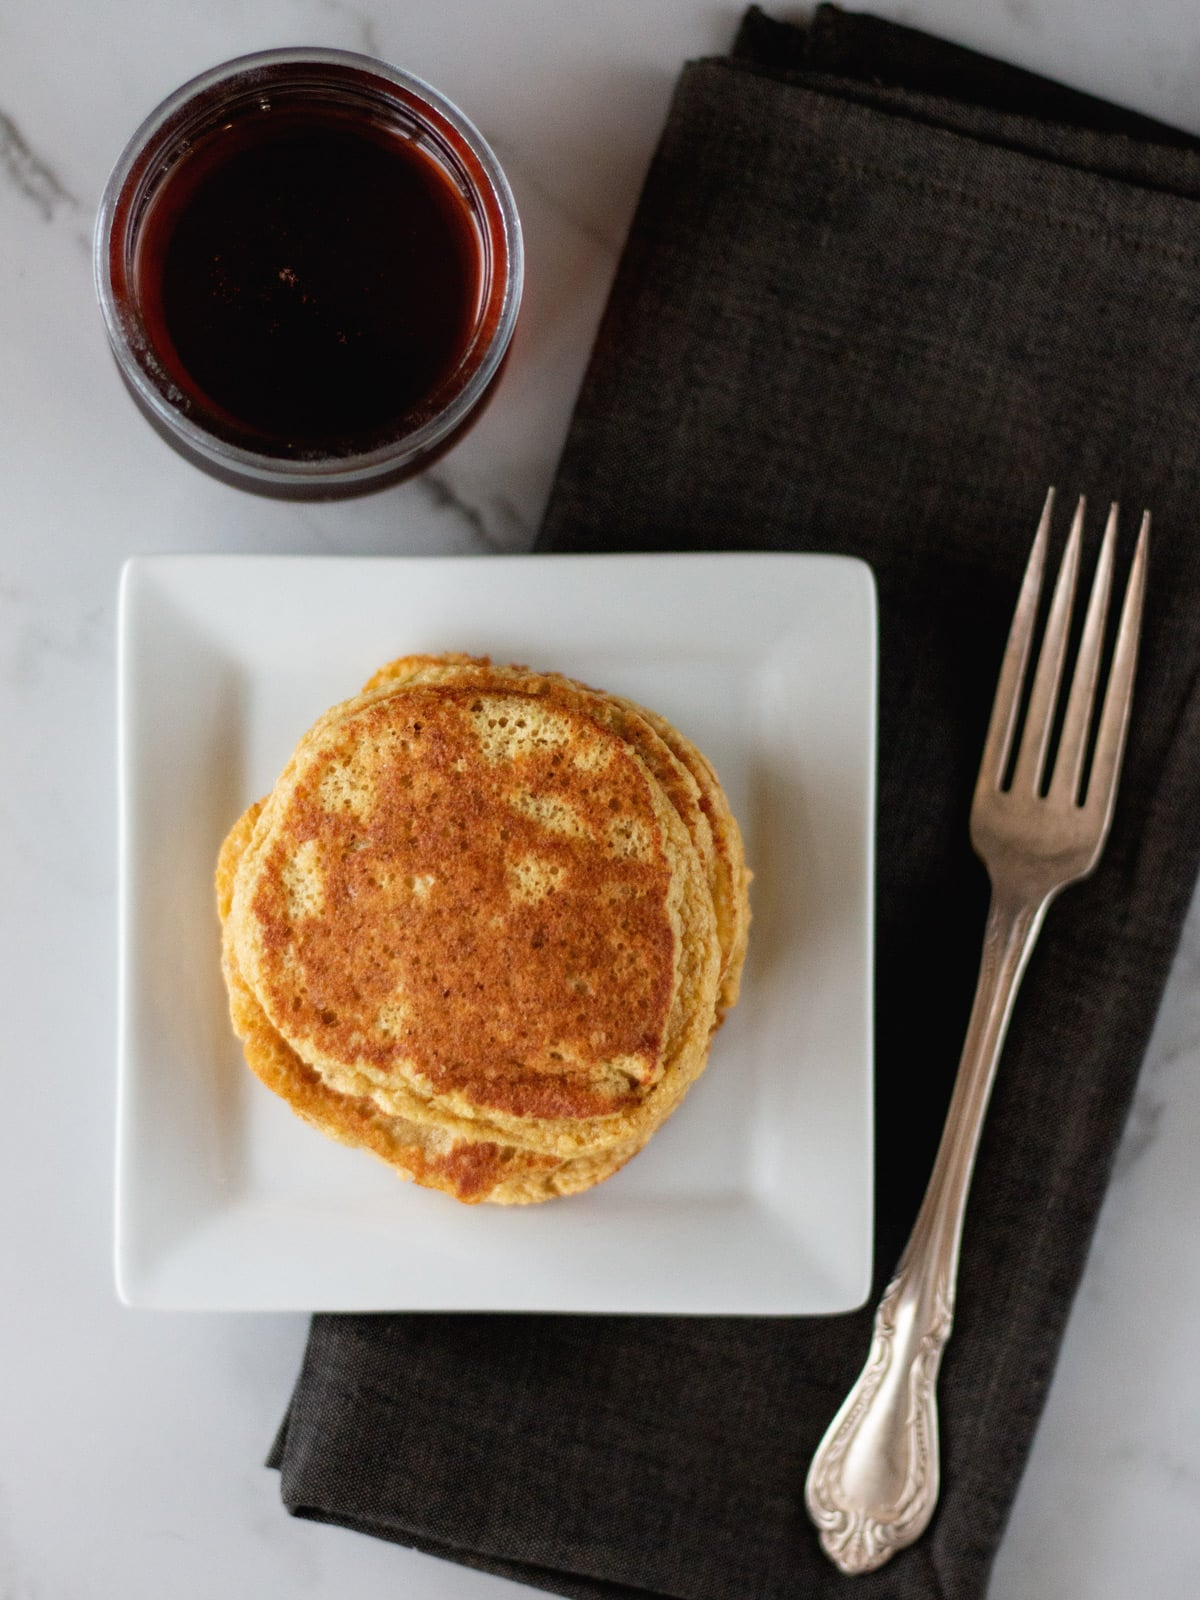 These paleo Banana Bread Pancakes with cinnamon and vanilla are absolutely irresistible!